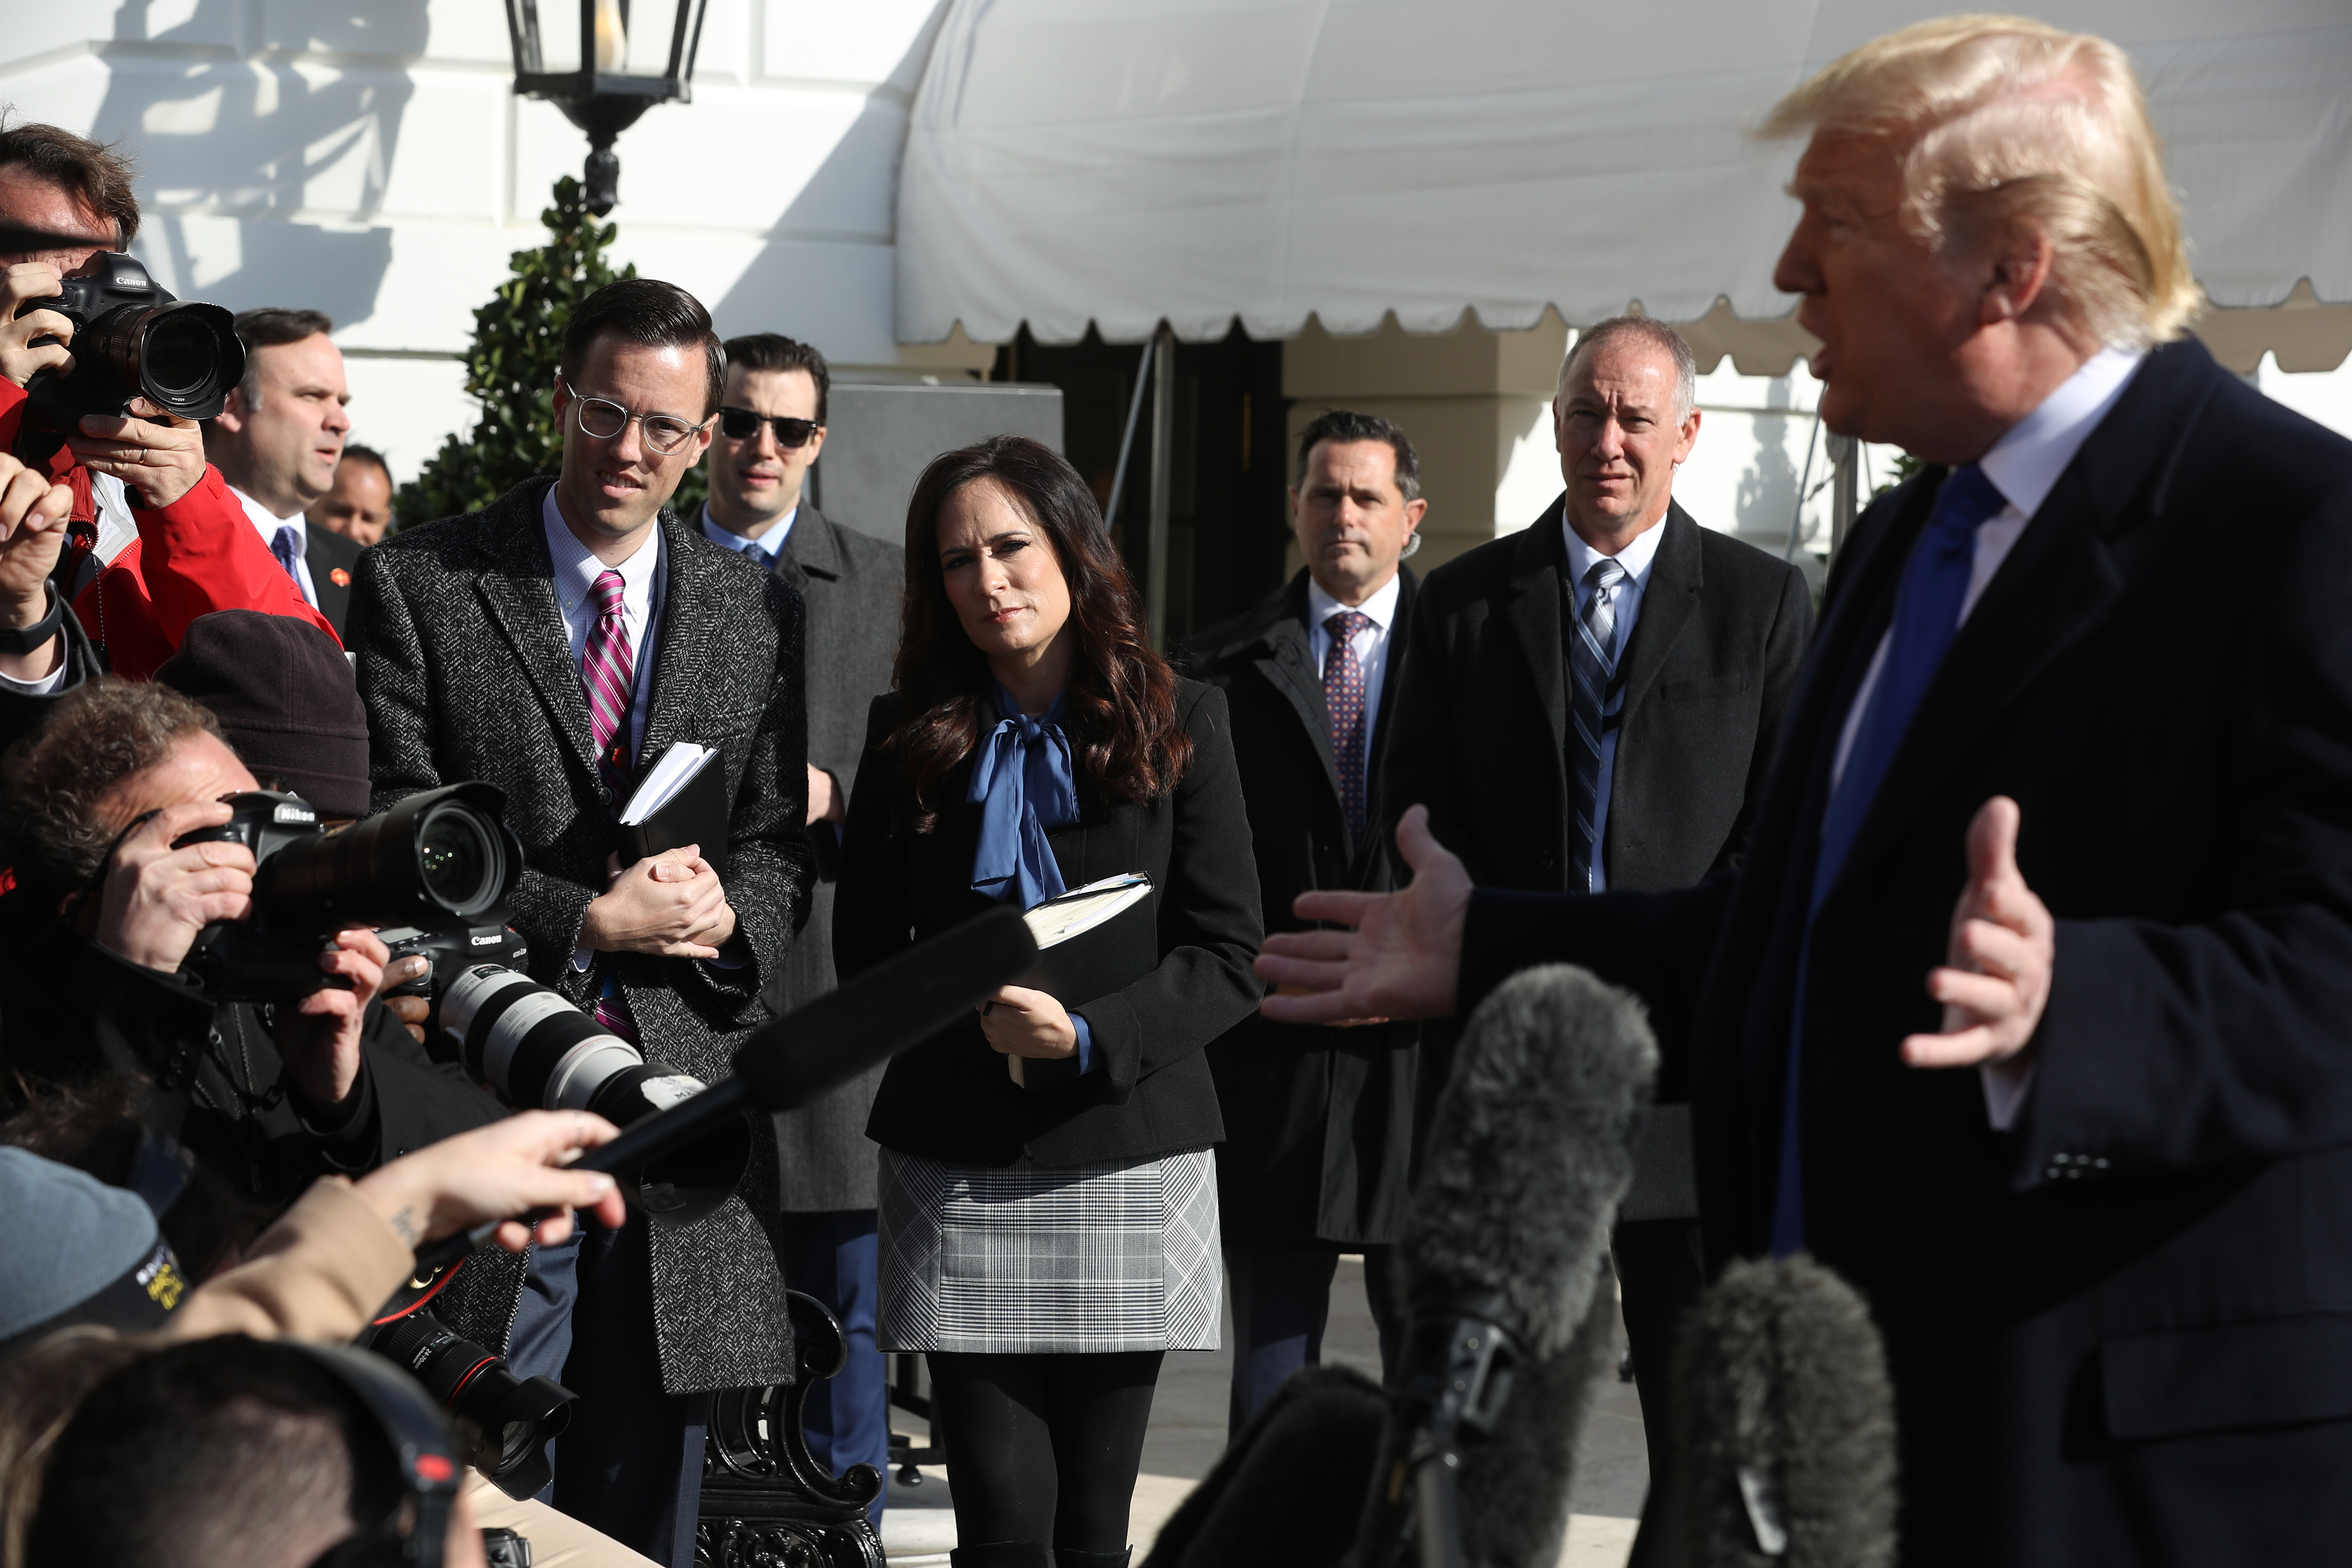 WASHINGTON, DC - NOVEMBER 08: White House Deputy Press Secretary Judd Deere and Press Secretary Stephanie Grisham (C) listen to U.S. President Donald Trump talk to reporters before he boards Marine One and departing the White House November 08, 2019 in Washington, DC. Trump is traveling to Atlanta, Georgia, where he plans to kick off his Black Voices for Trump Coalition, an effort to attract more African-American voters. (Photo by Chip Somodevilla/Getty Images)